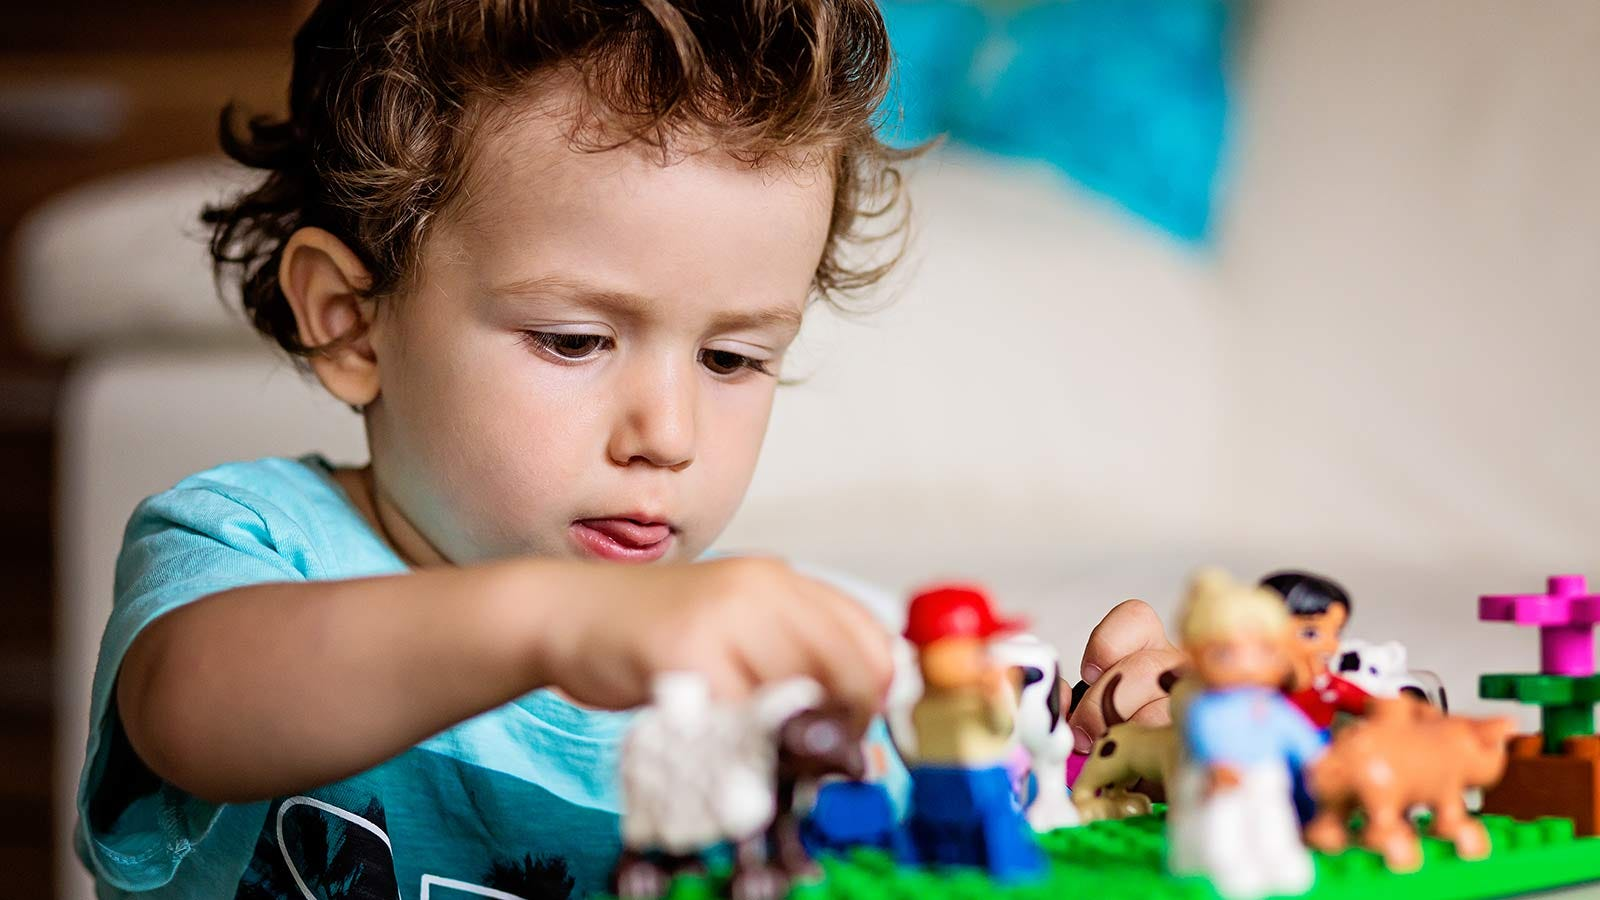 A young boy playing with LEGOs.